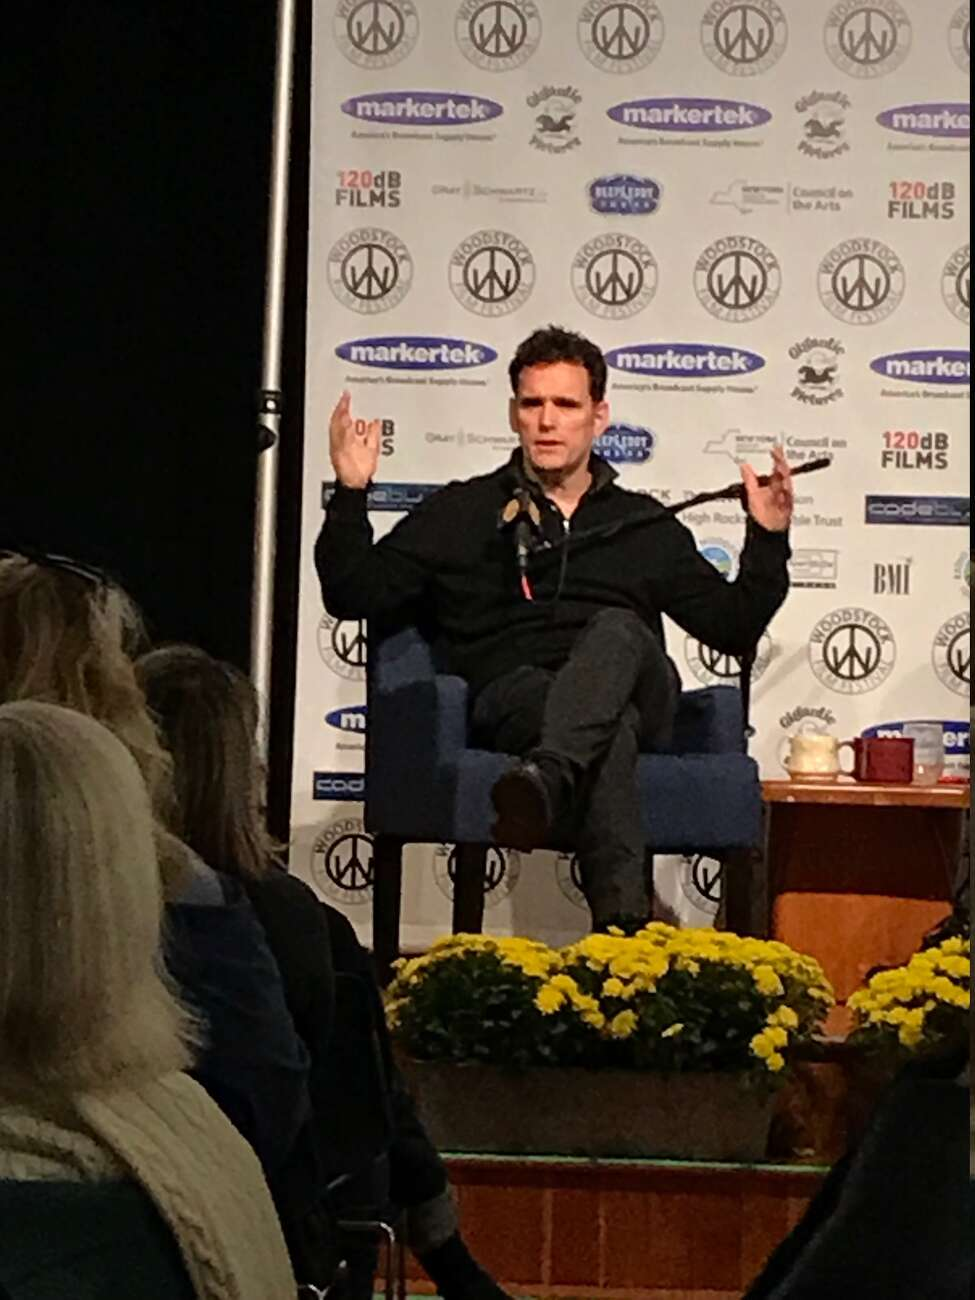 Matt Dillon makes a point about being referred to as a